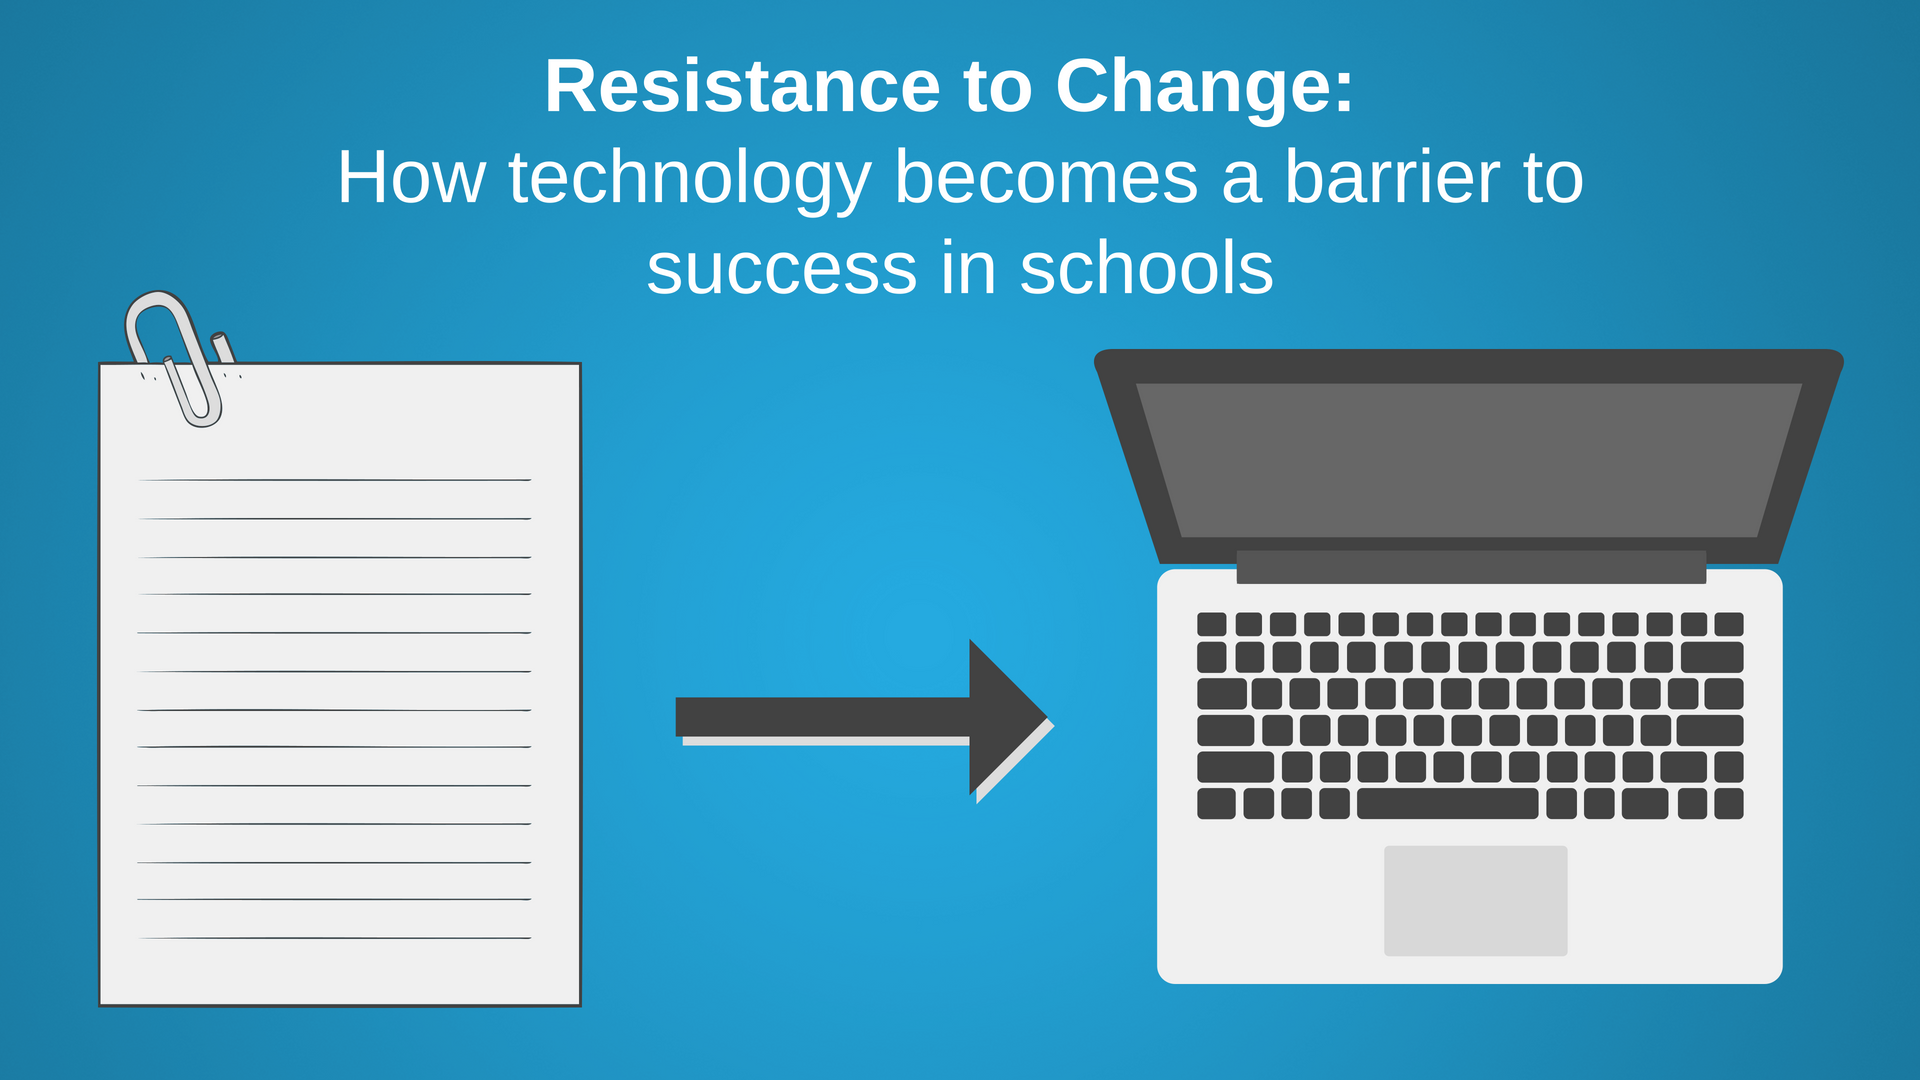 Resistance to Change: How technology becomes a barrier to success in schools